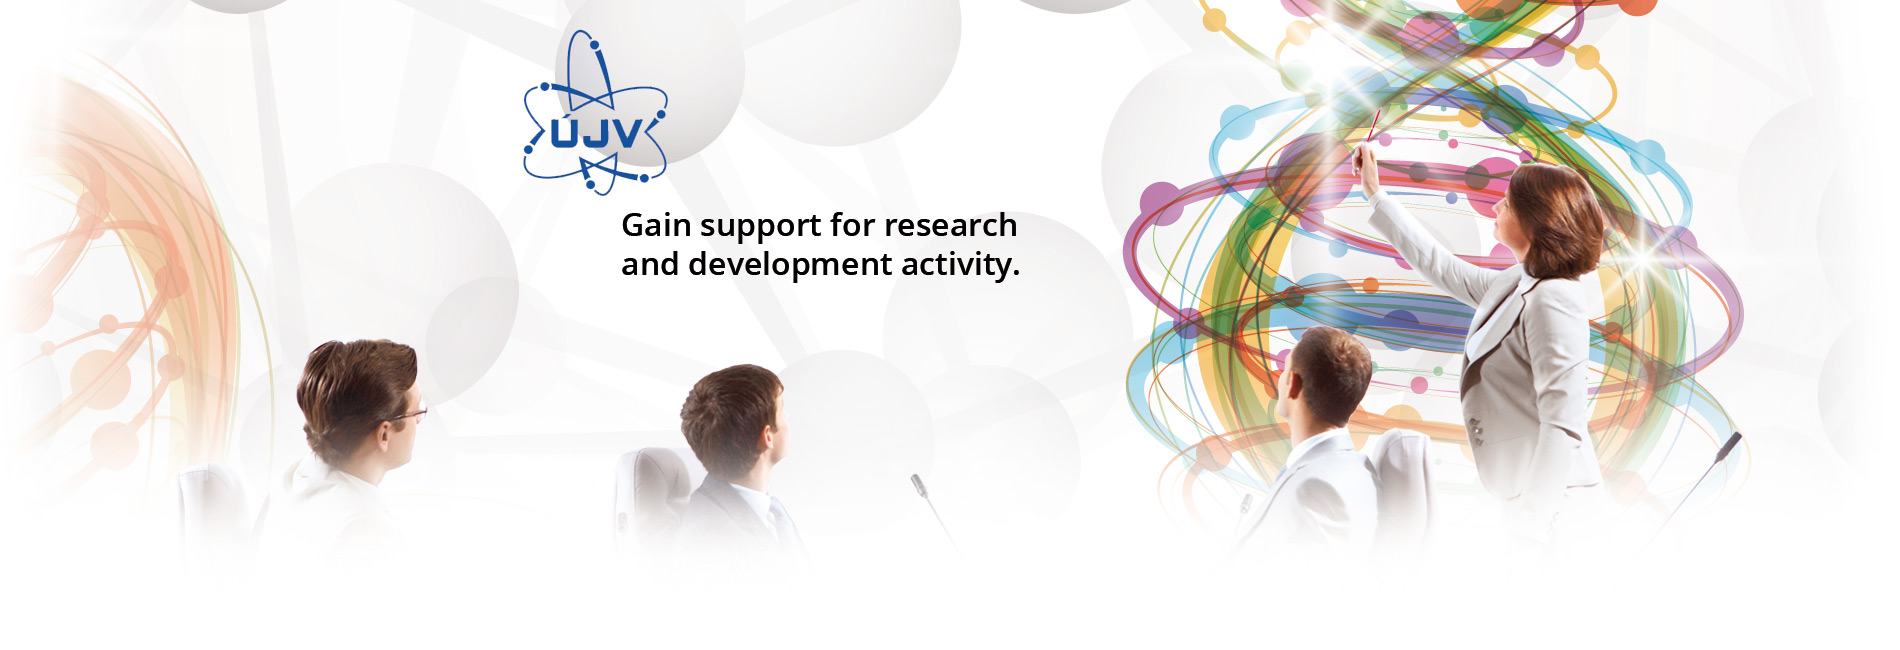 Gain support for research and development activity.